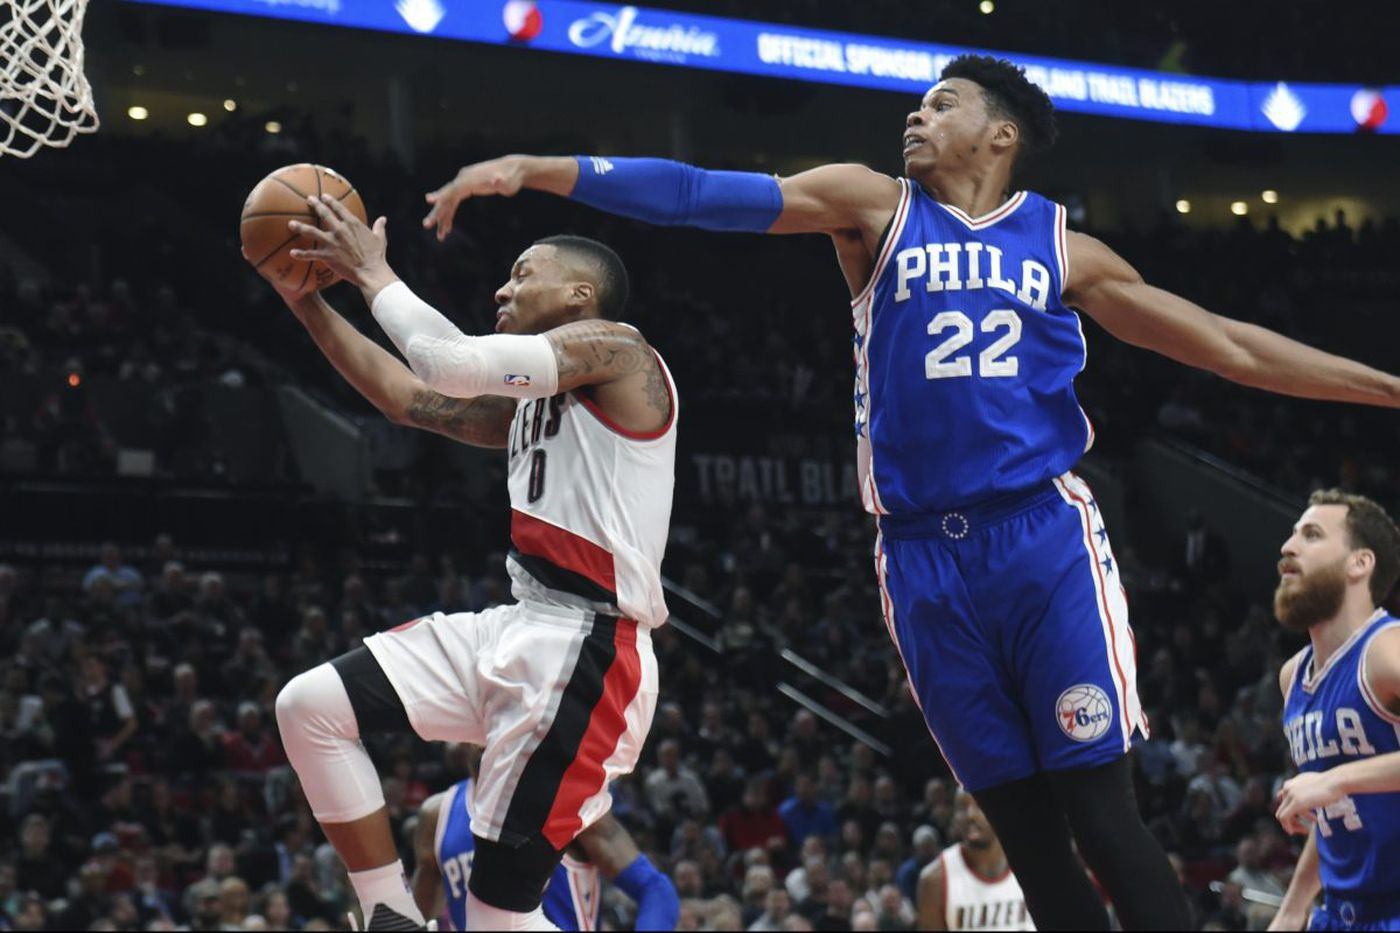 Sixers-Trail Blazers preview: Ben Simmons and Philly must stop Damian Lillard, CJ McCollum and Jusuf Nurkic